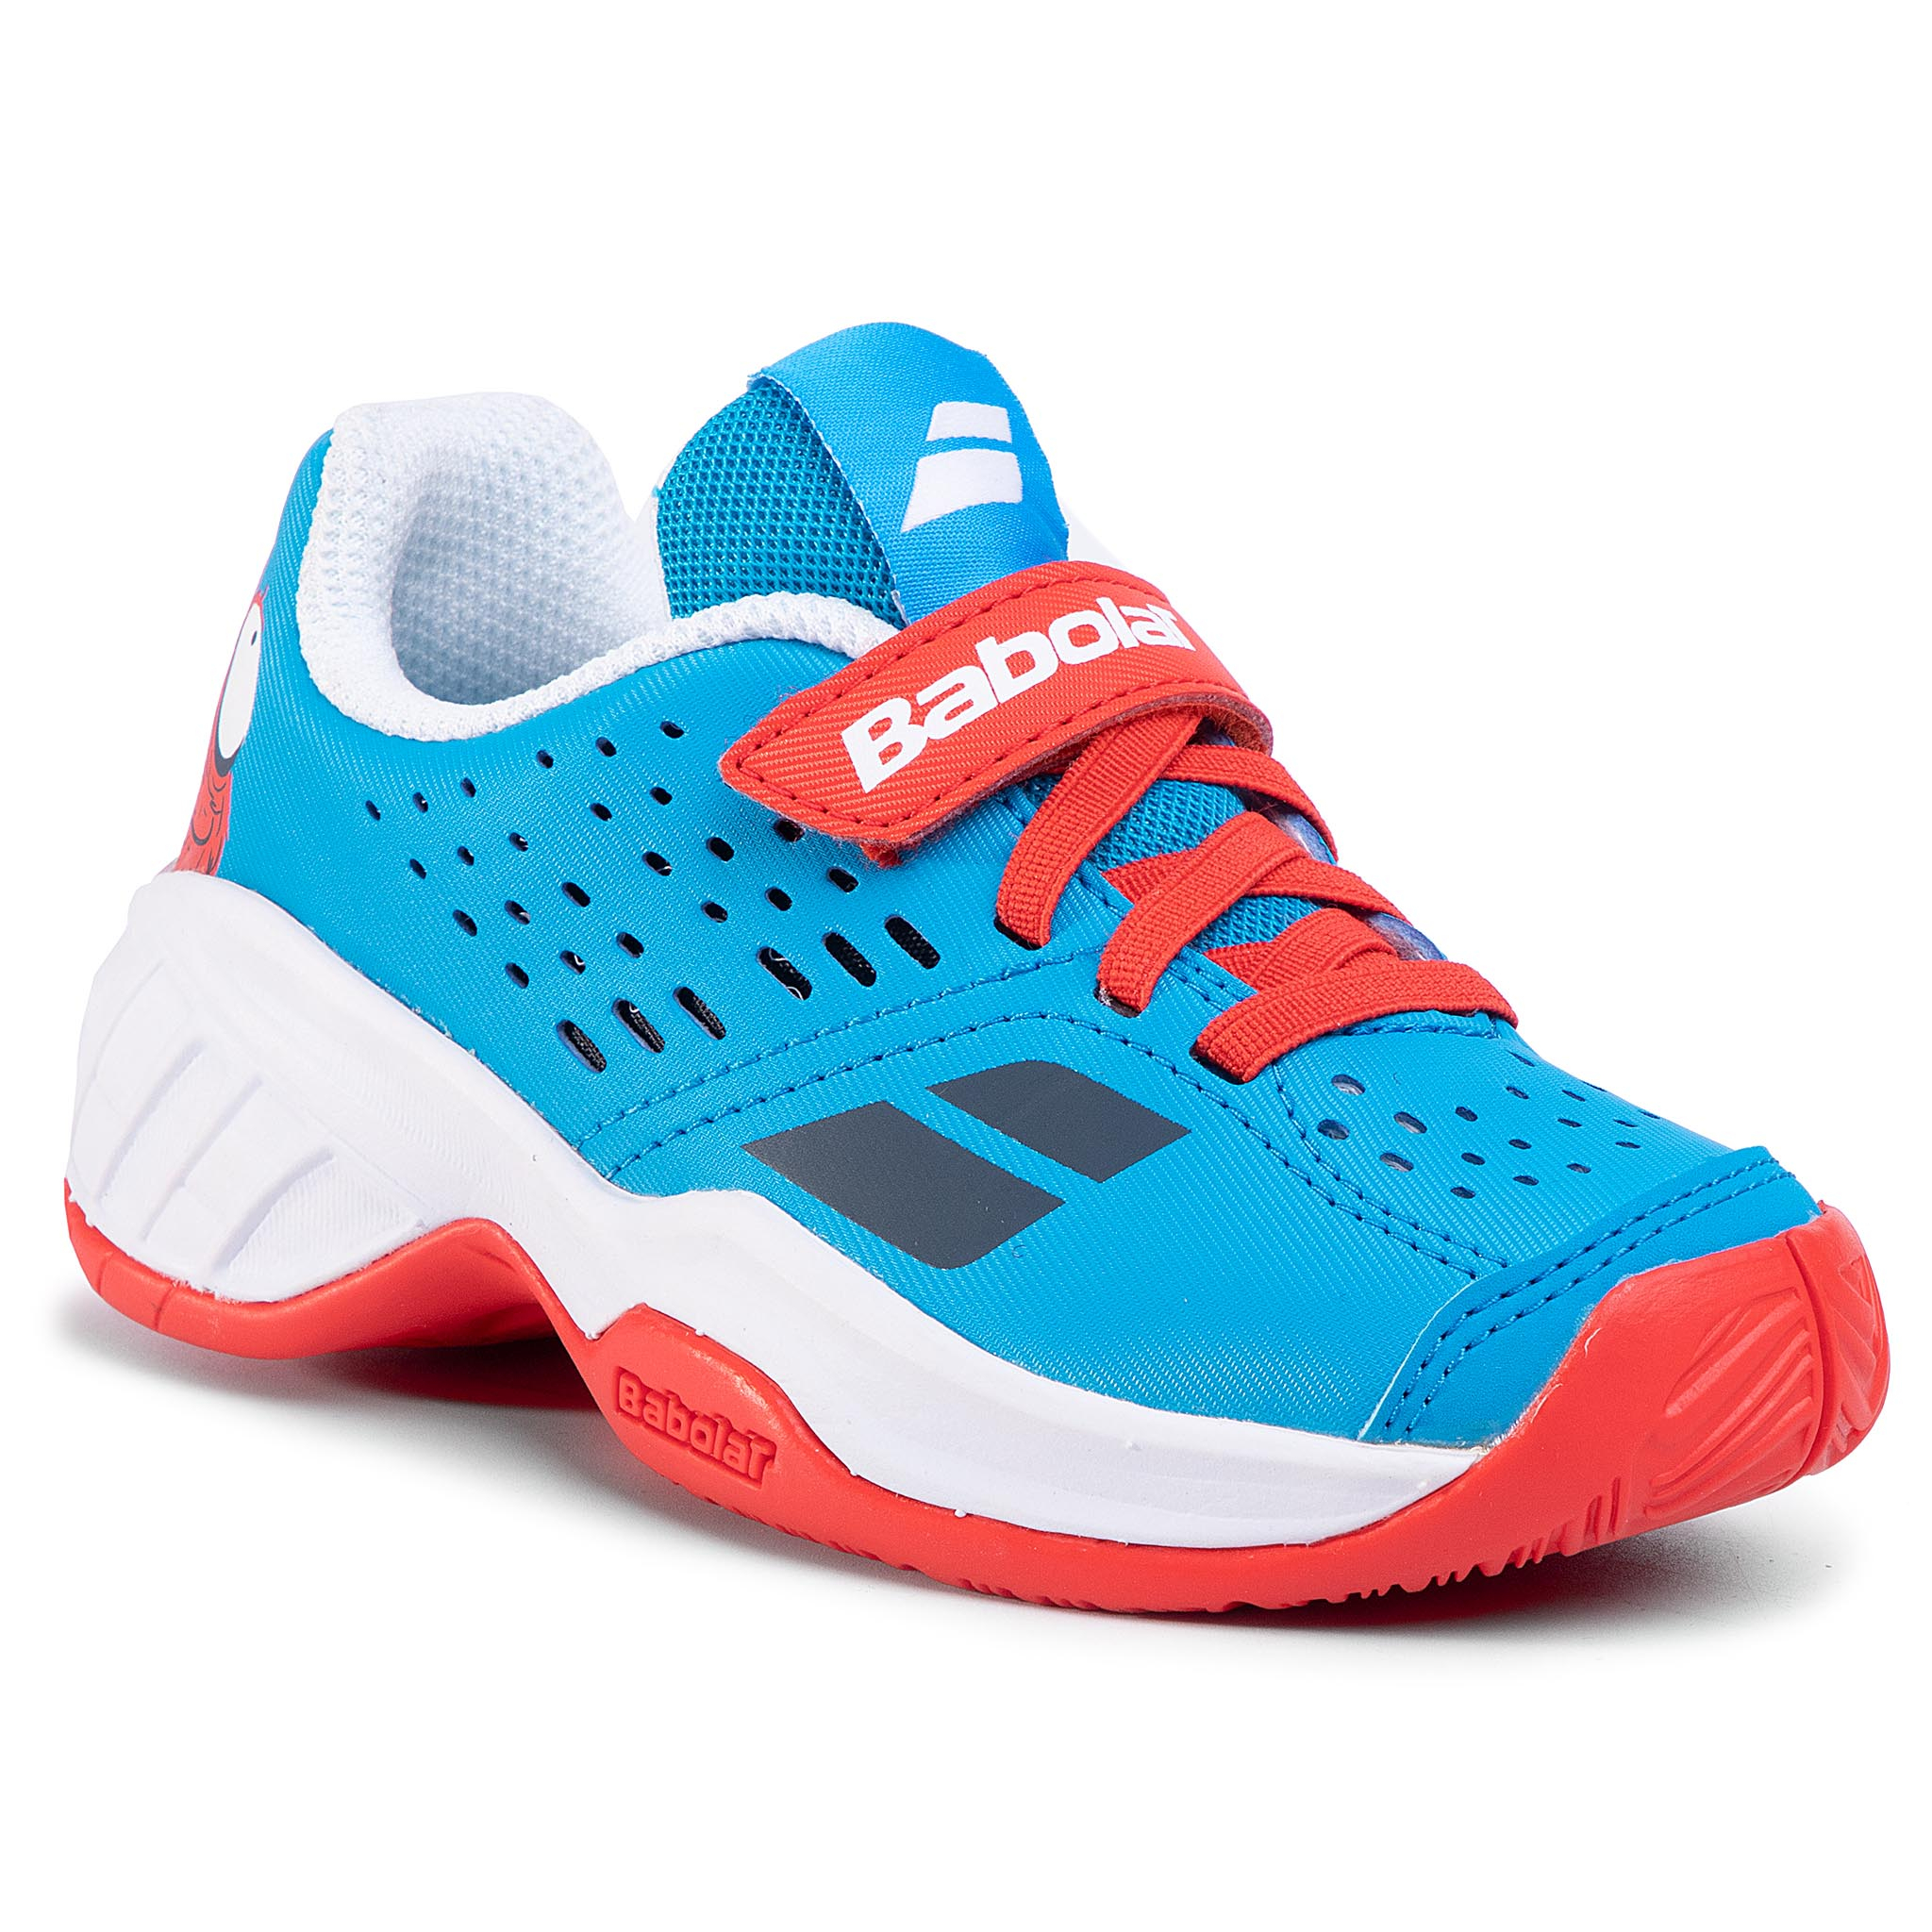 Batai BABOLAT - Pulsion All Court Kid 32S20518 Tomato Red/Blue Aster